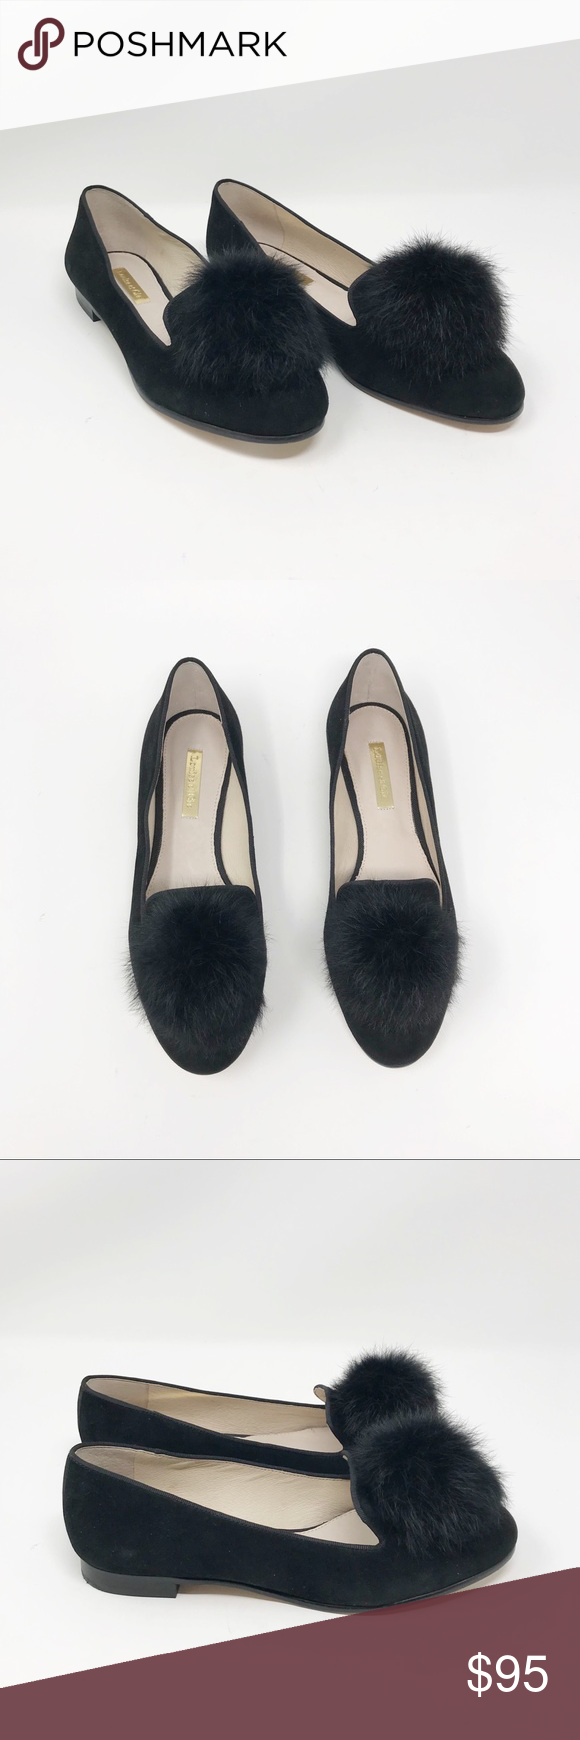 632243c68e0 New Louise Et Cie Andres Pom Loafers Size 6 These are brand new with tag  Louise